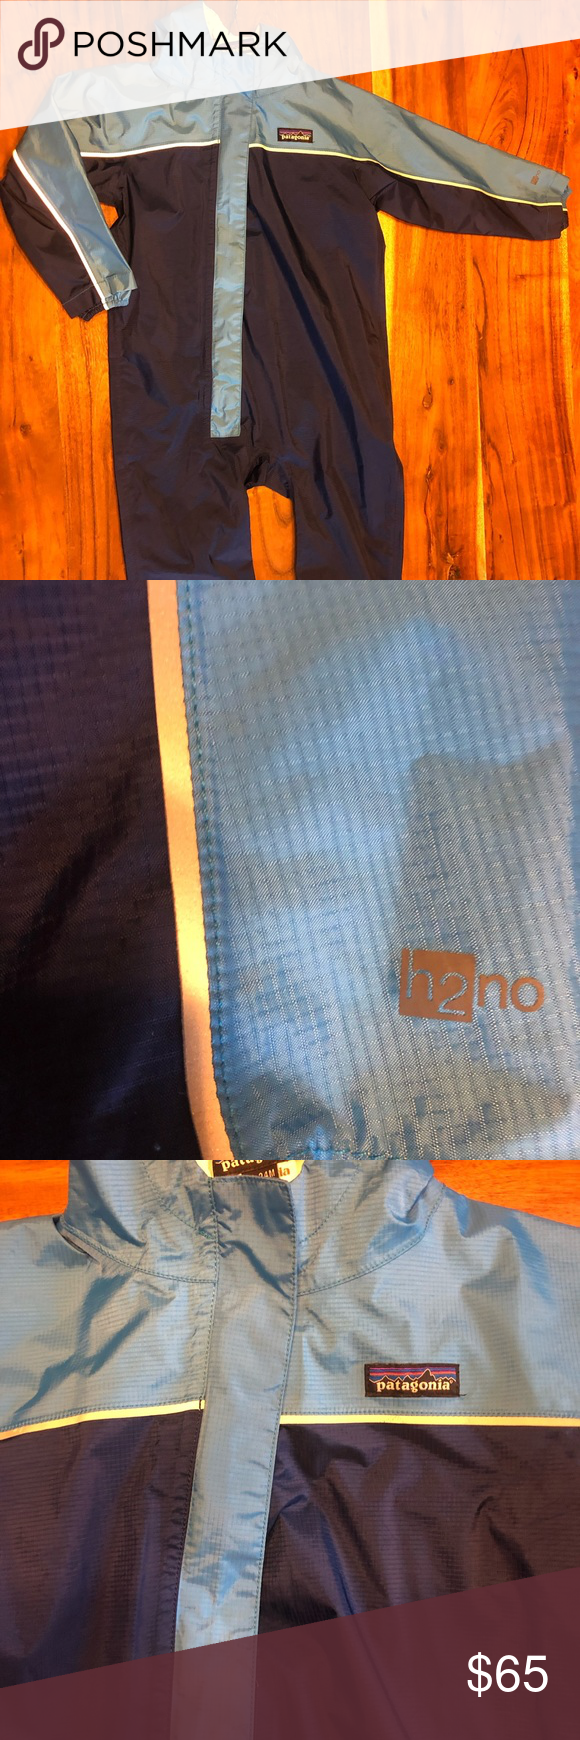 4d2b4e5b994d Patagonia jumpsuit In great used condition size 18-24mo. Patagonia One  Pieces Bodysuits